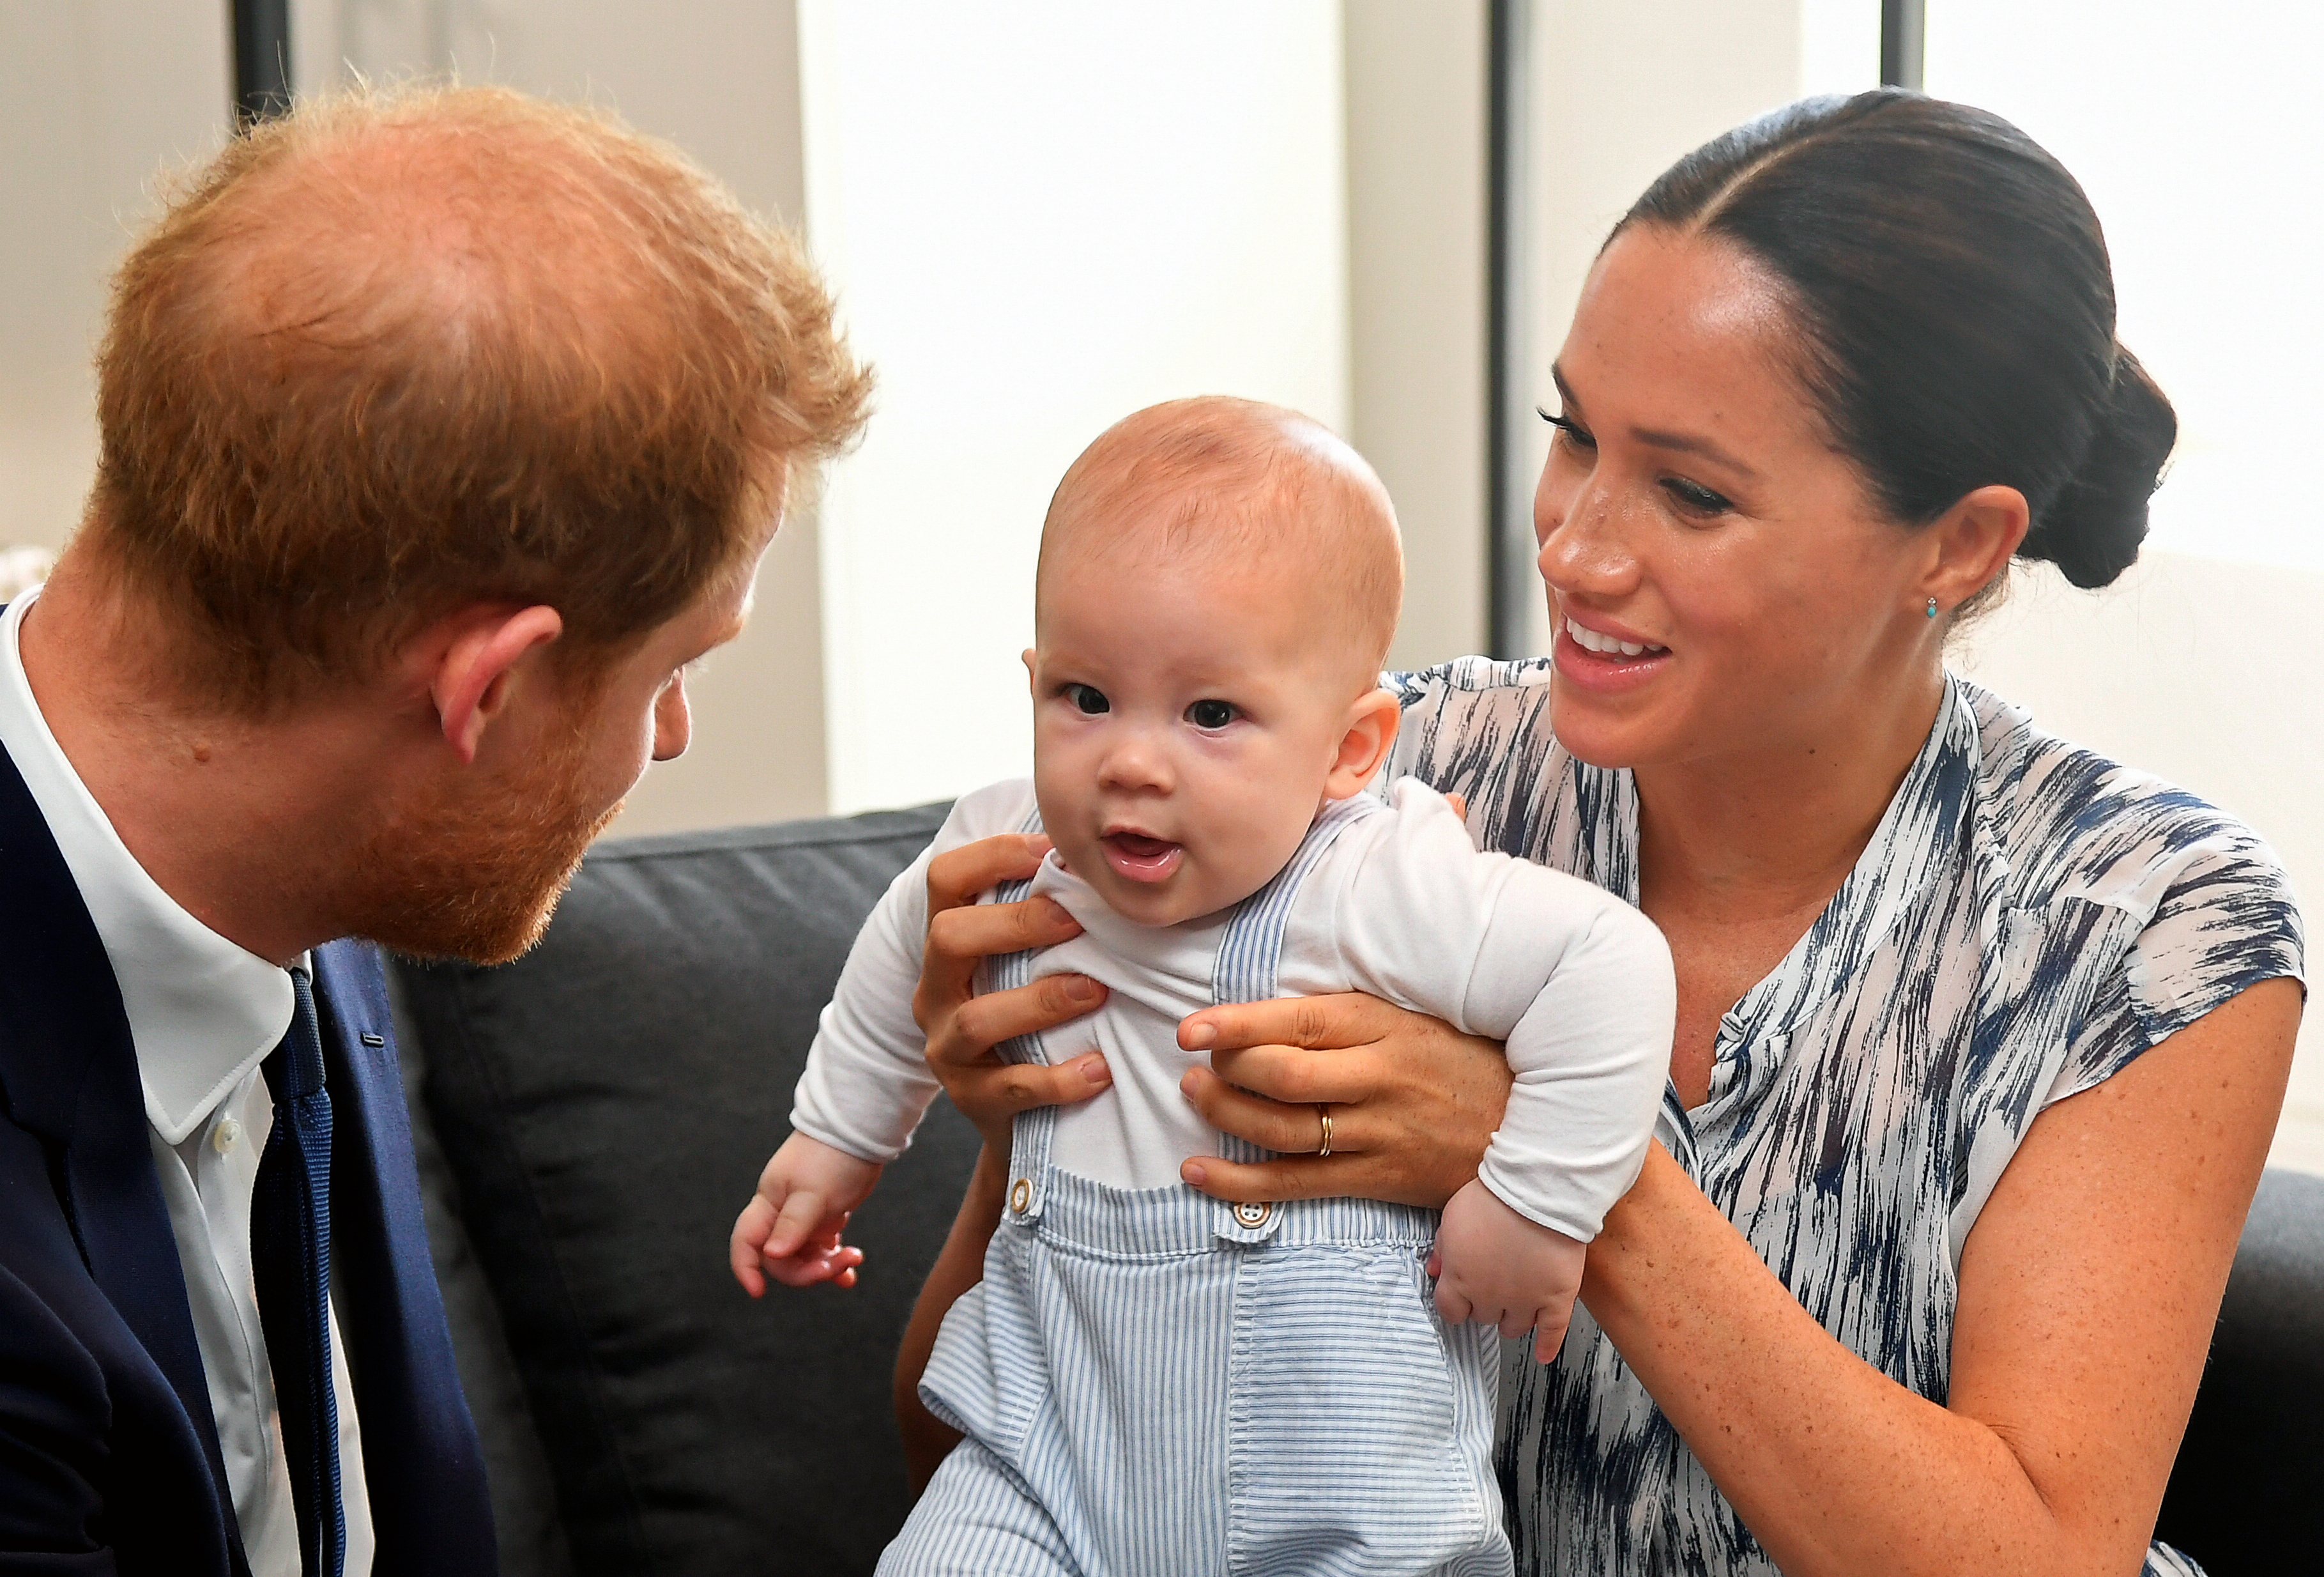 Prince Harry, Duke of Sussex and Meghan, Duchess of Sussex tend to their baby son Archie Mountbatten-Windsor at a meeting with Archbishop Desmond Tutu on September 25, 2019 in Cape Town, South Africa.